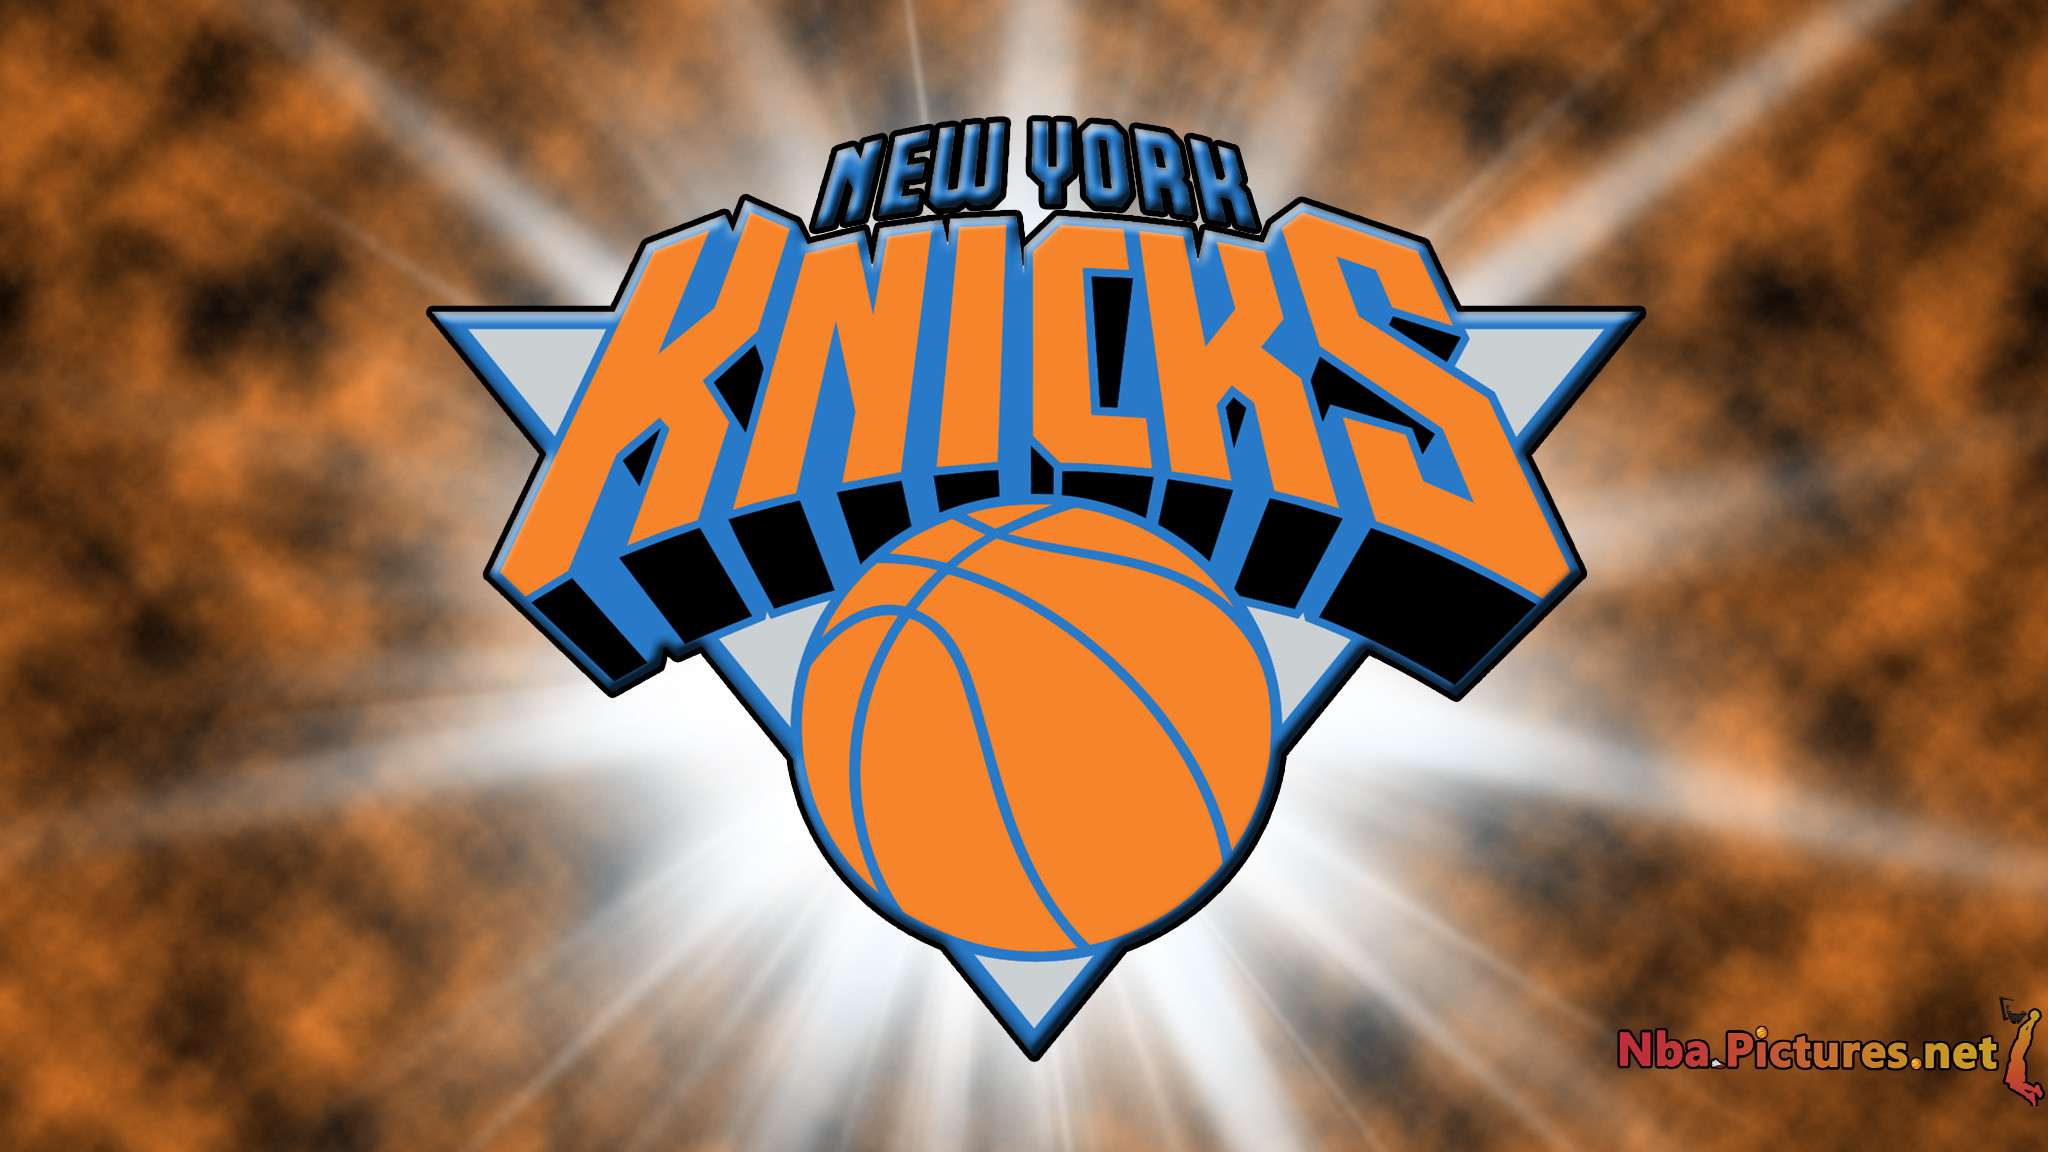 2048x1152 NEW YORK KNICKS basketball nba tf wallpaper |  | 158612 |  WallpaperUP